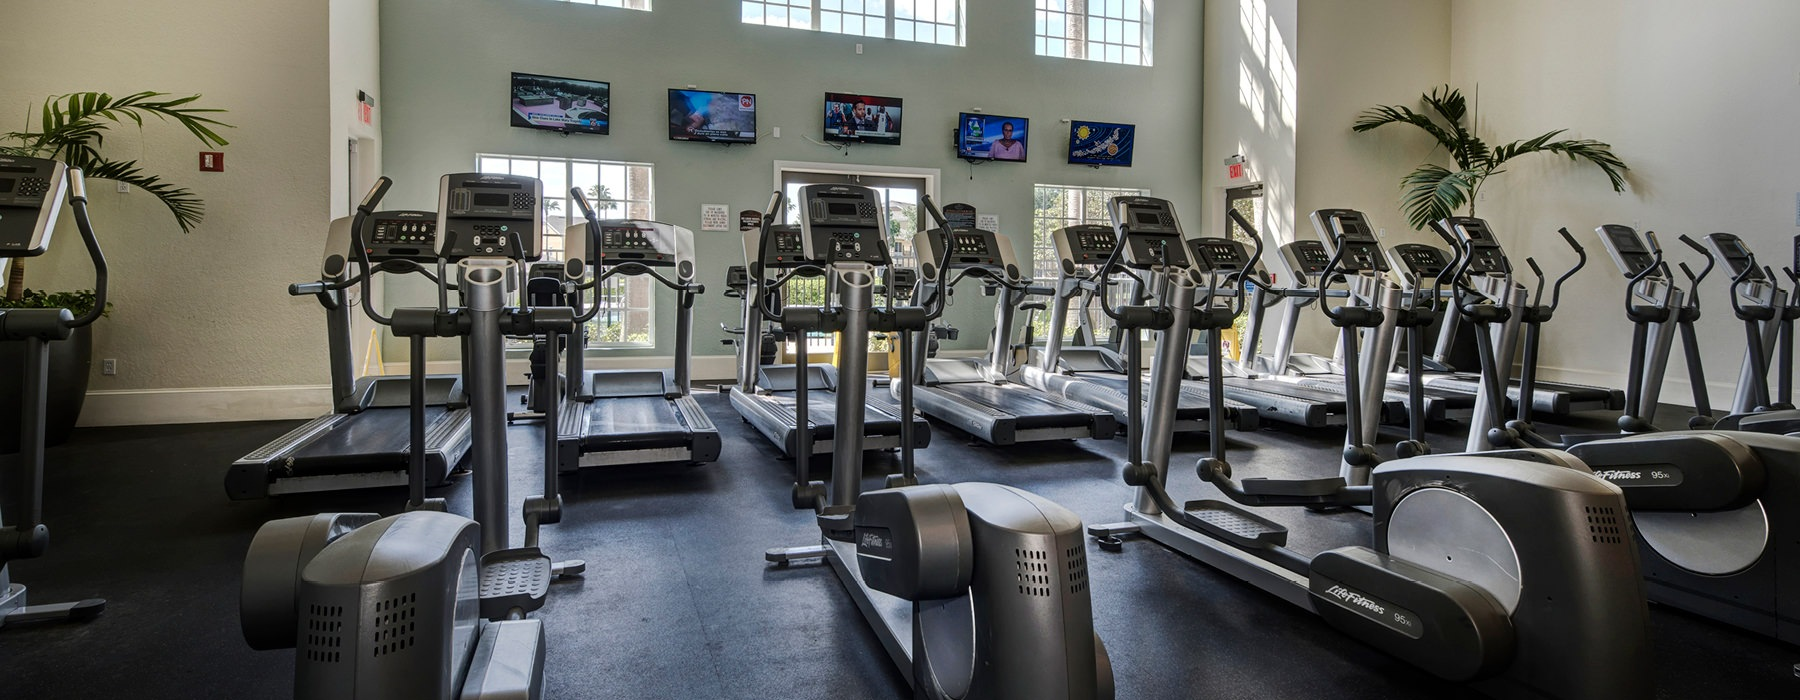 spacious and bright fitness center filled with equipment